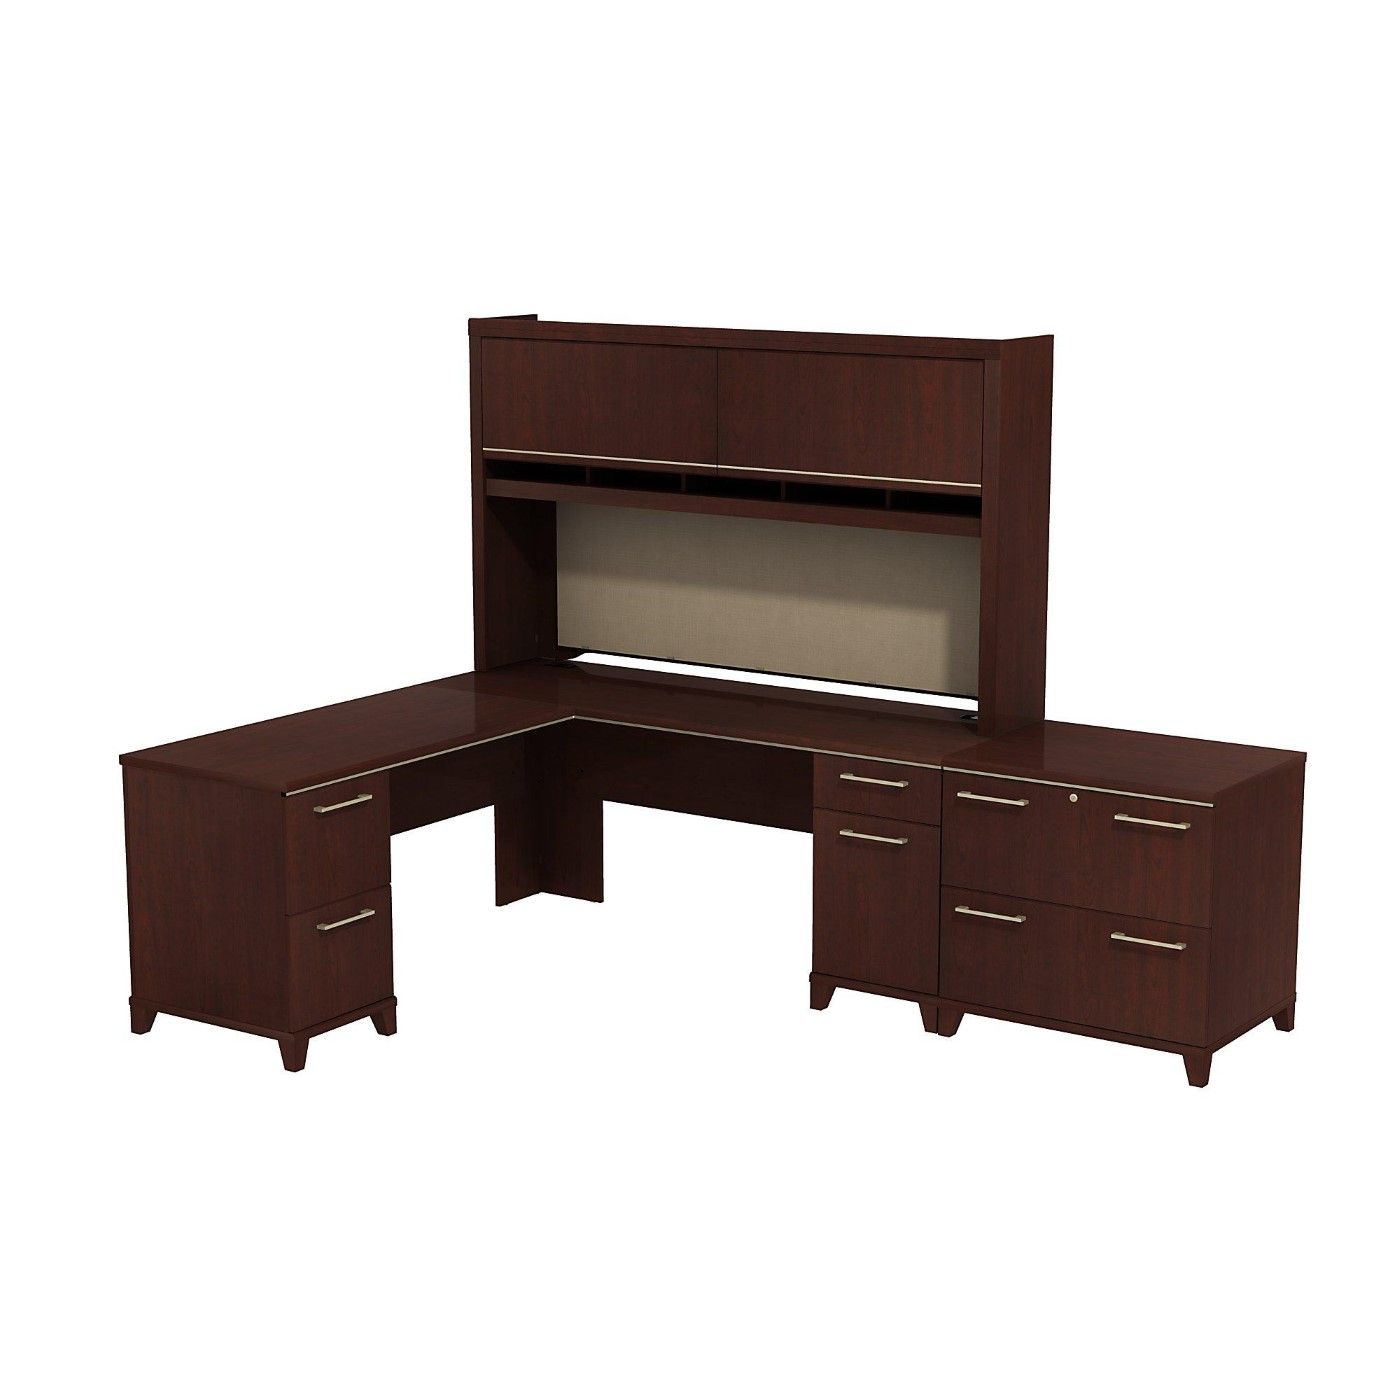 <font color=#c60><b>BUSH BUSINESS FURNITURE ENTERPRISE 72W X 72D L SHAPED DESK WITH HUTCH AND LATERAL FILE CABINET #EH-ENT003CS. FREE SHIPPING</font></b></font></b>